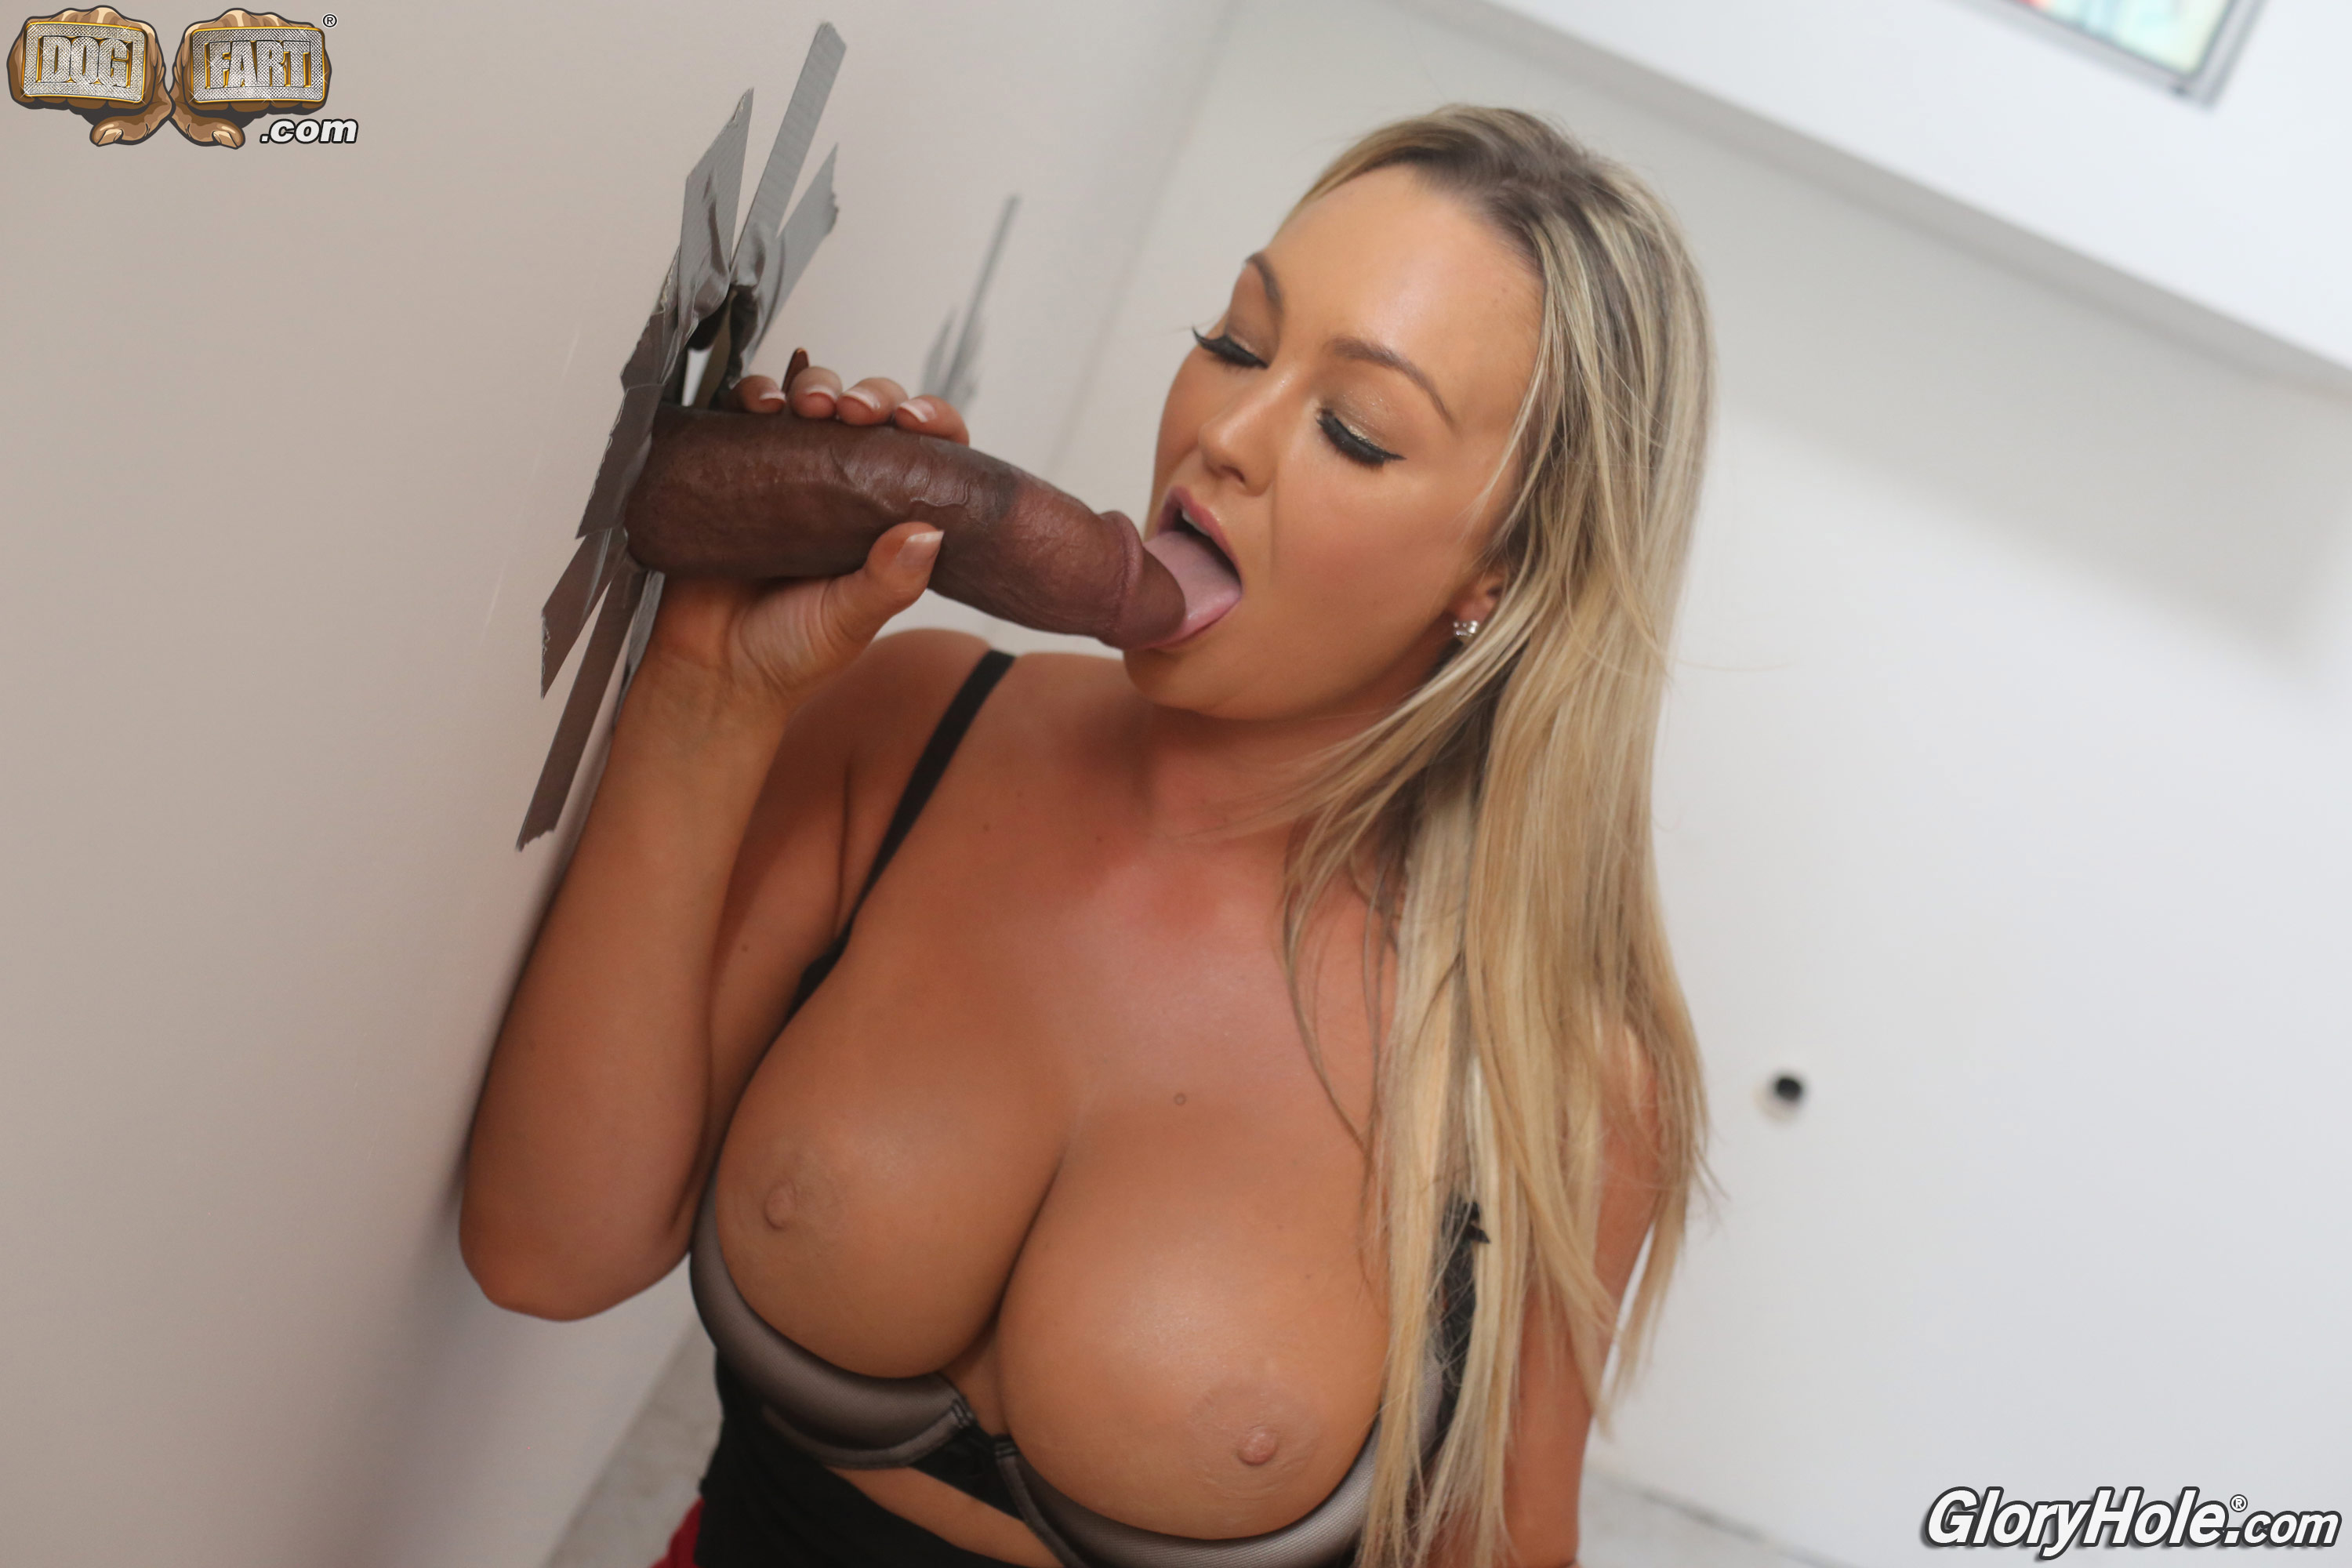 galleries GloryHole content abbey brooks pic 11